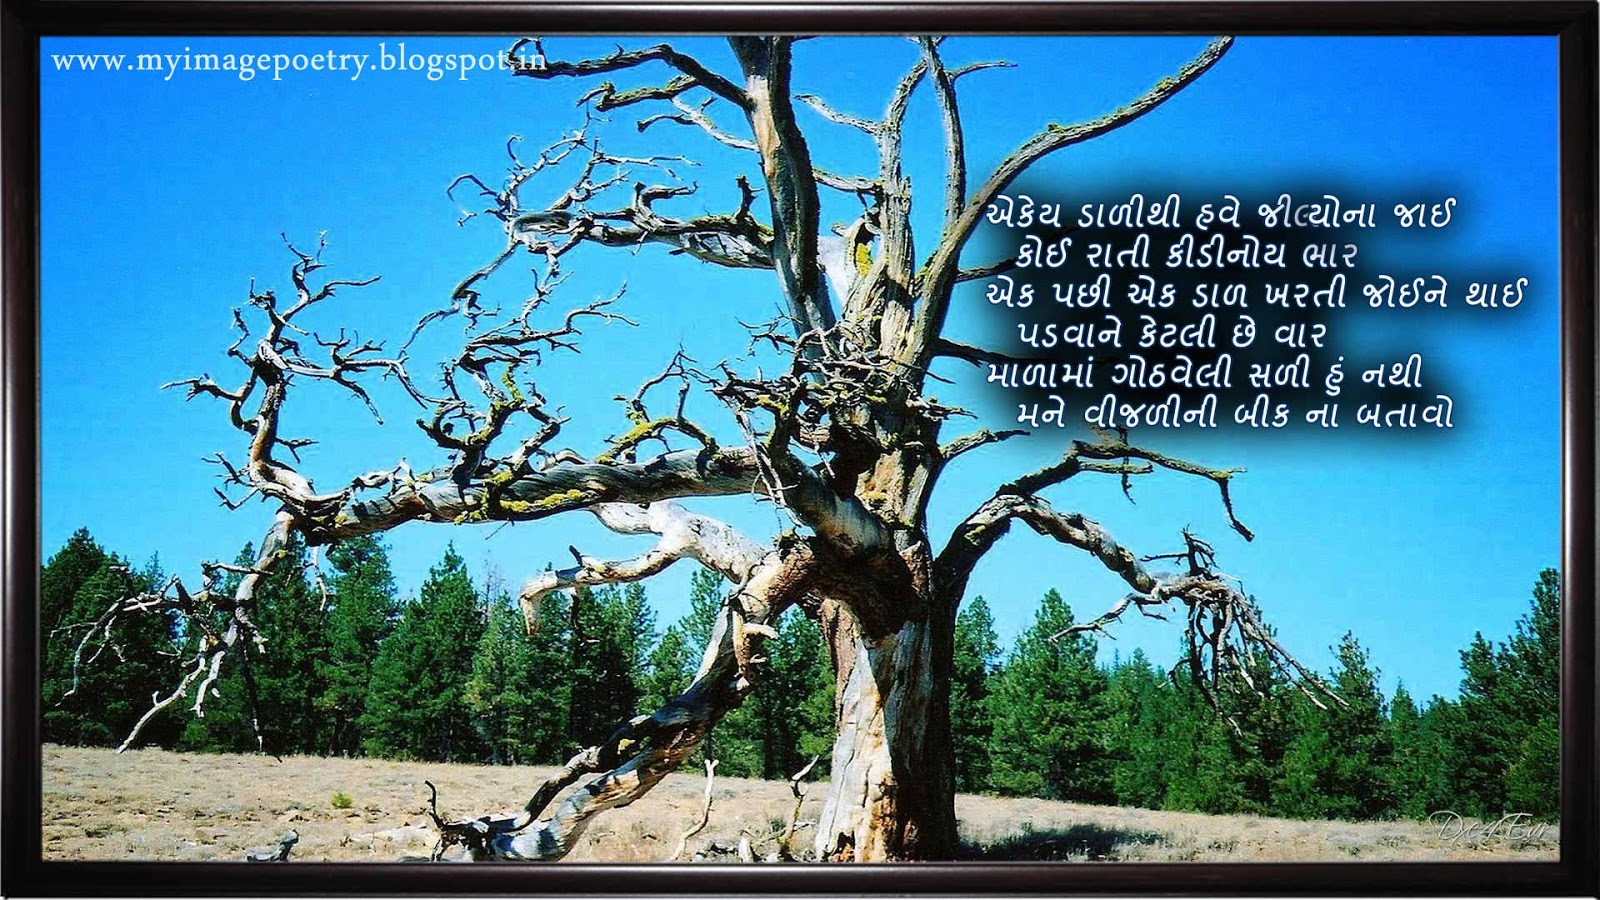 gujarati image poetry old tree gujarati image poetry bindass bird